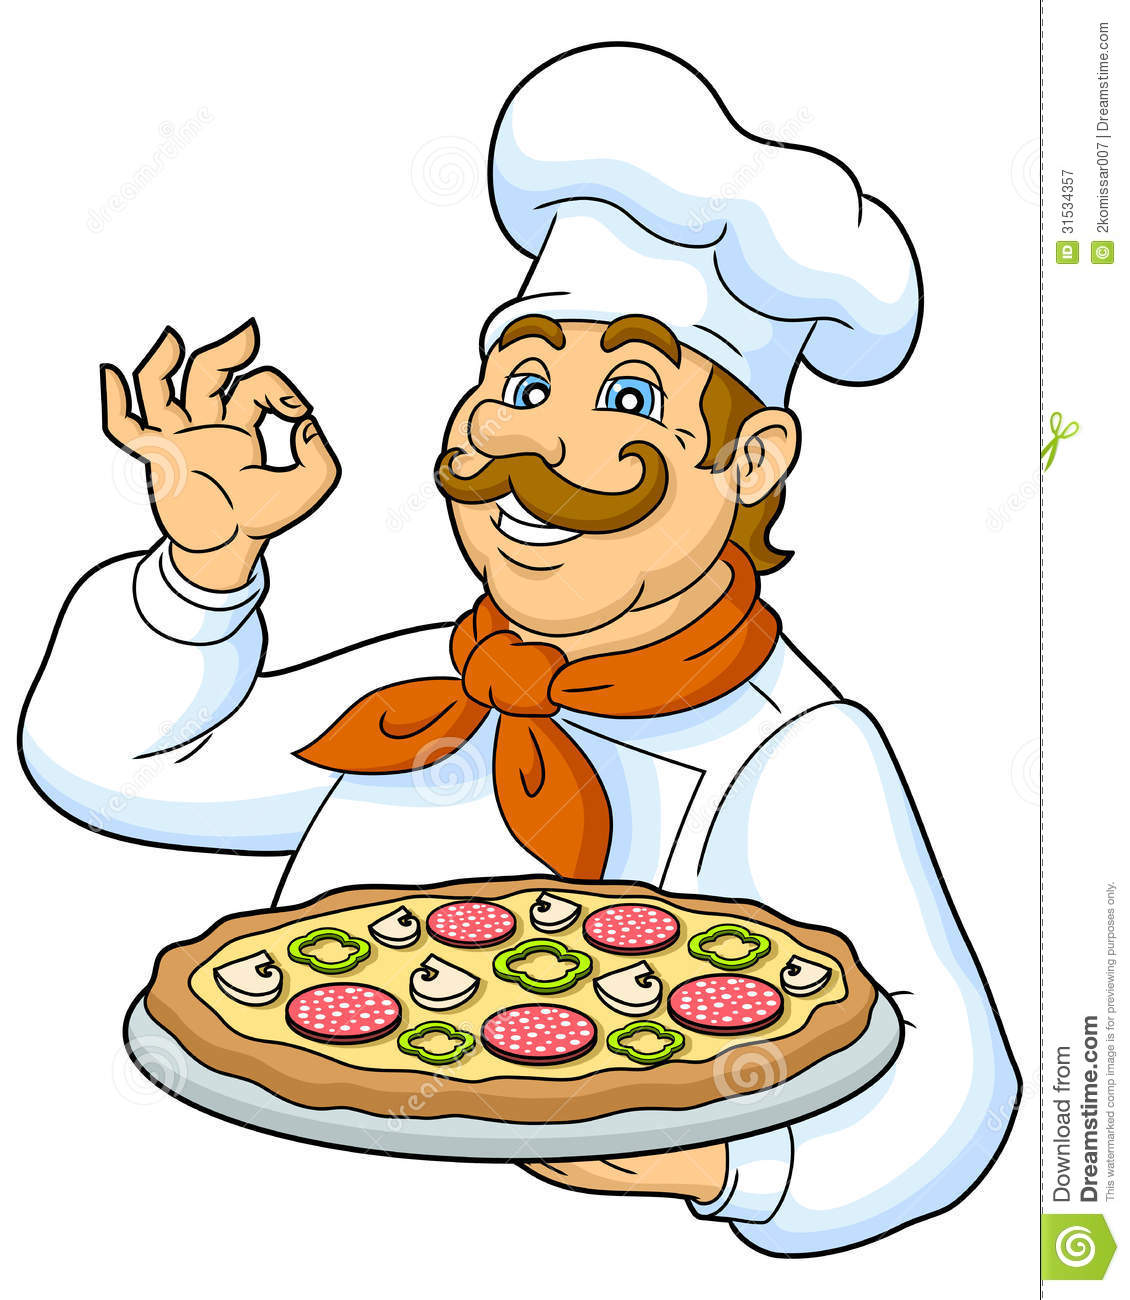 Cooking Kitchen Clip Art: Cook Clipart 20 Free Cliparts